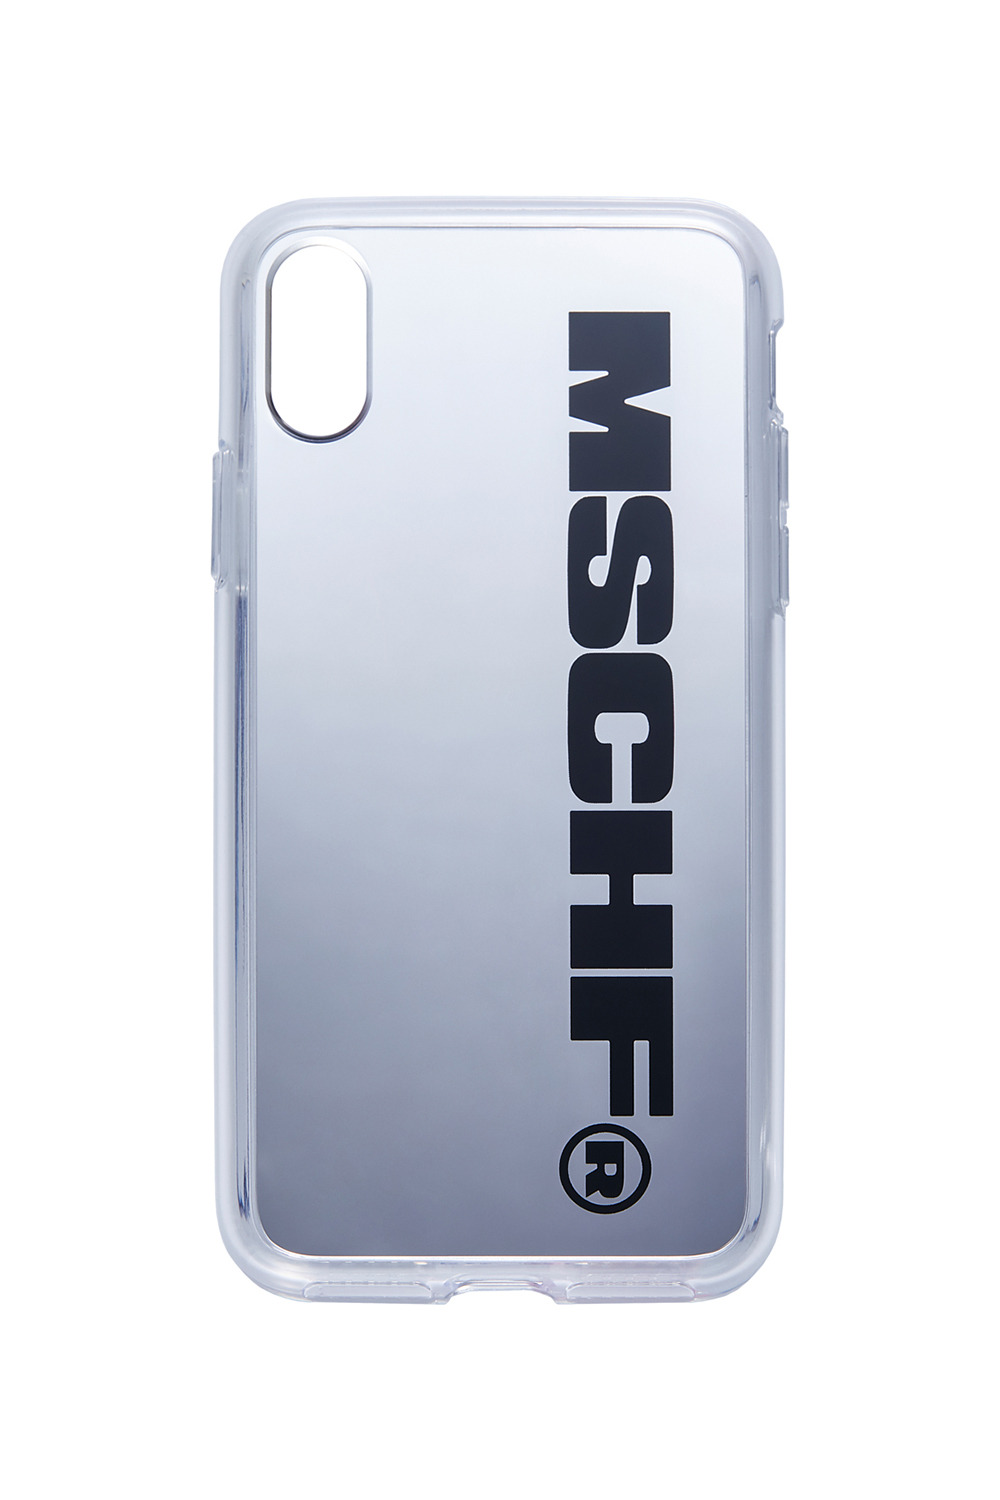 MSCHF_IPHONE MIRROR CASE_black